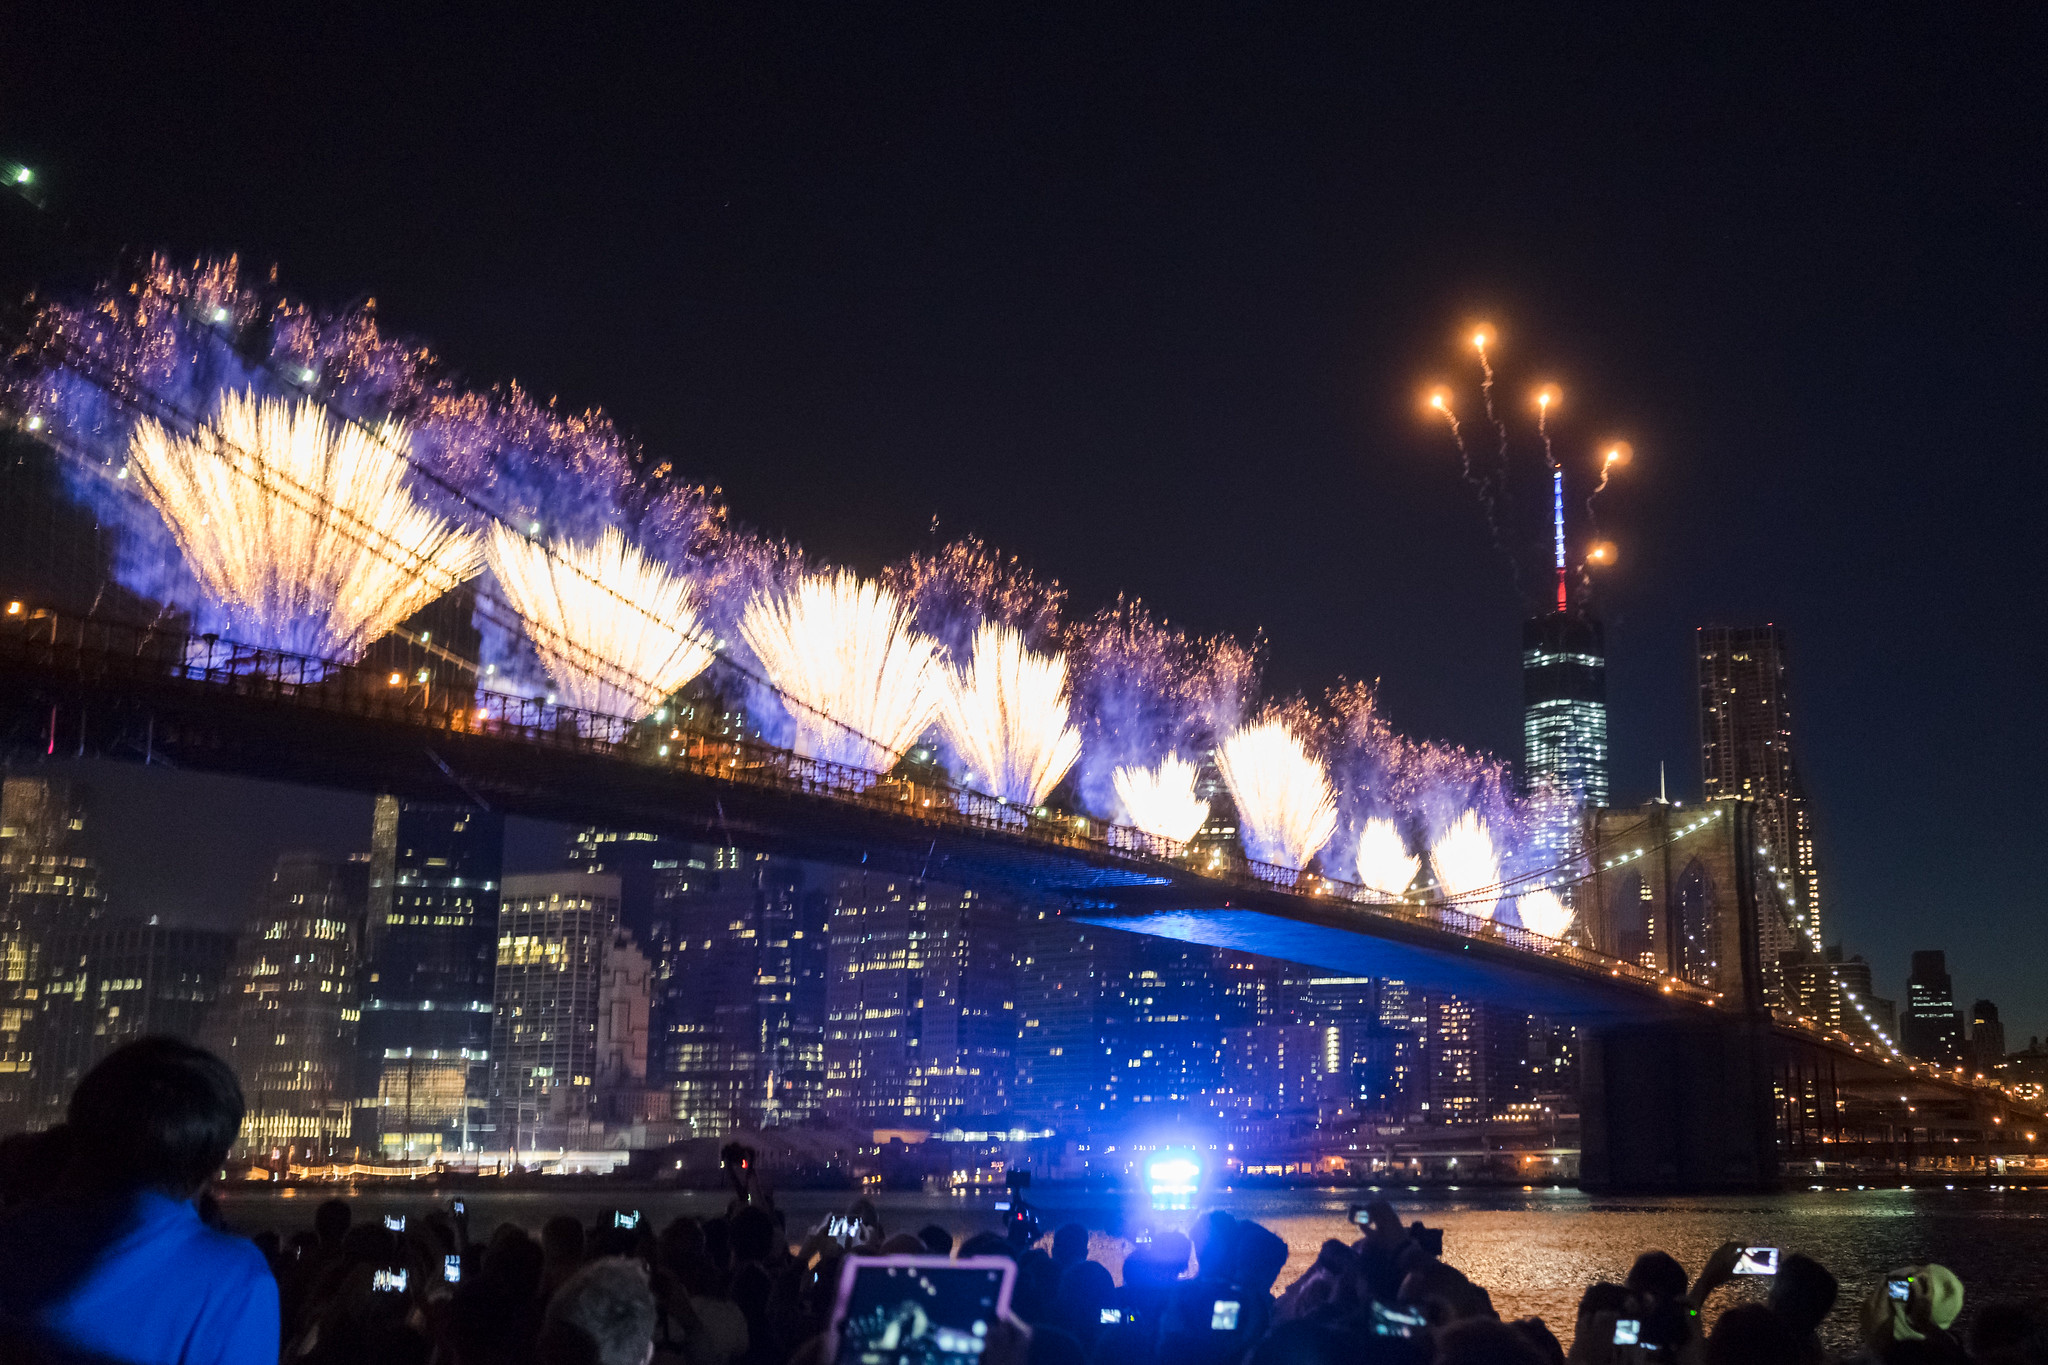 brooklyn-bridge-july-4th-fireworks-2014.jpg